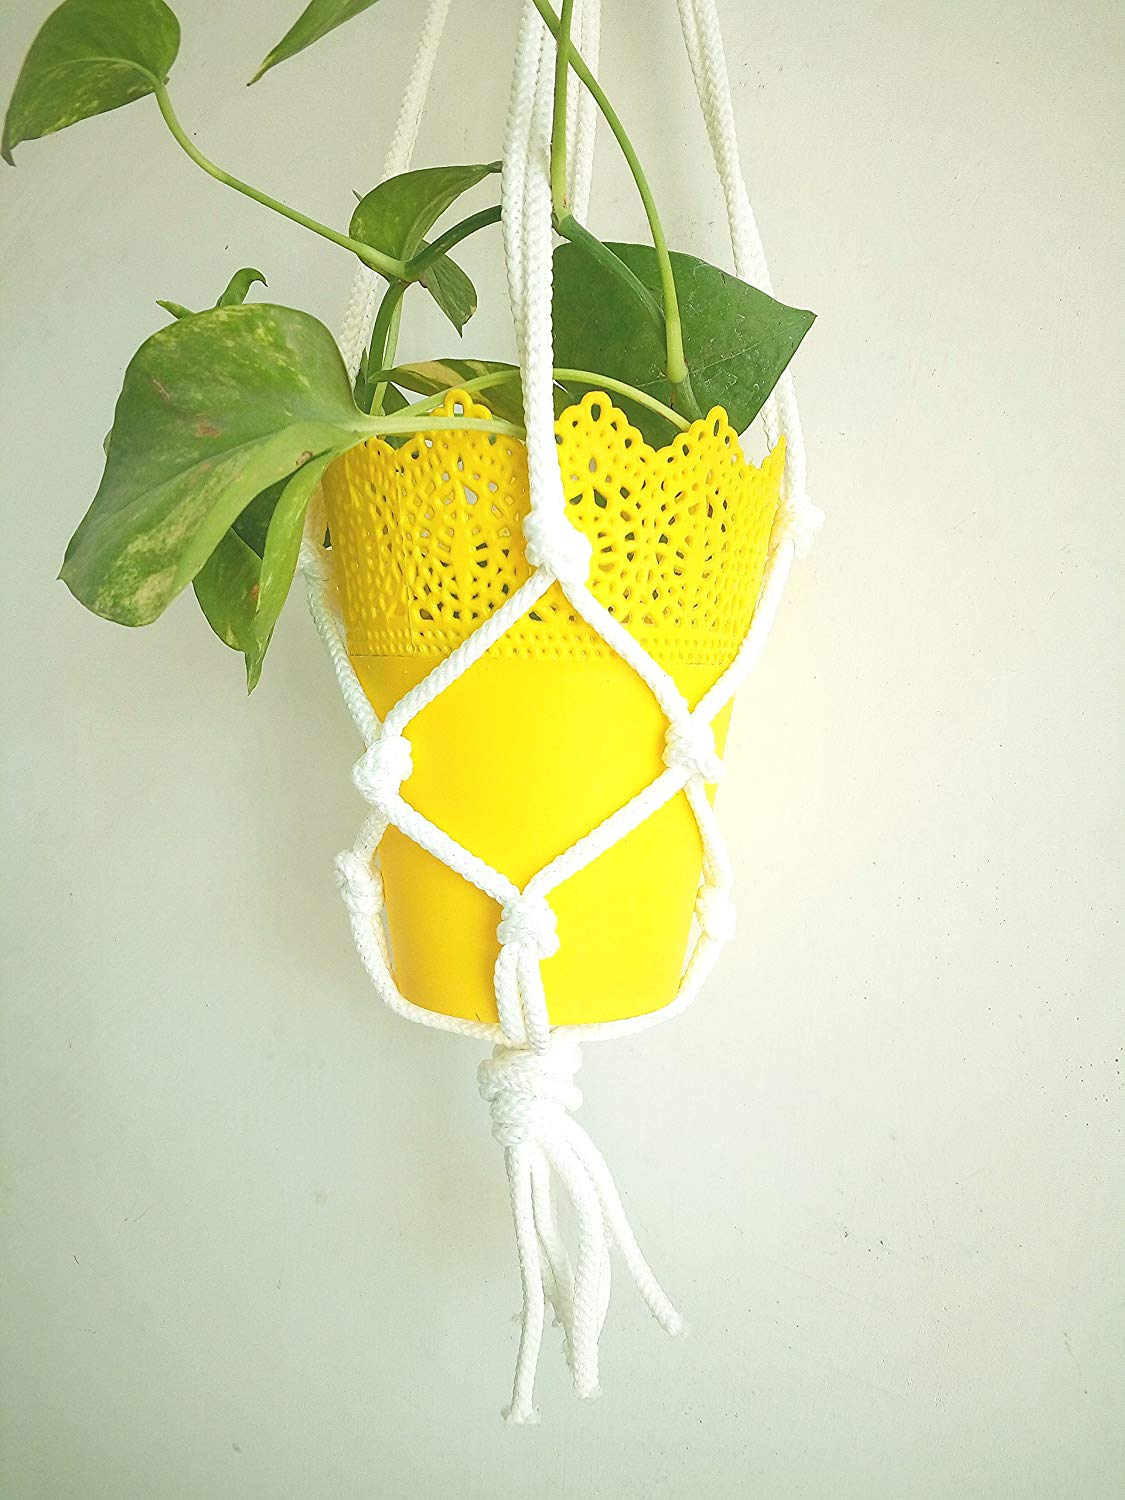 Traditional Macrame Indoor Plant Holder Handmade By Women Artisans